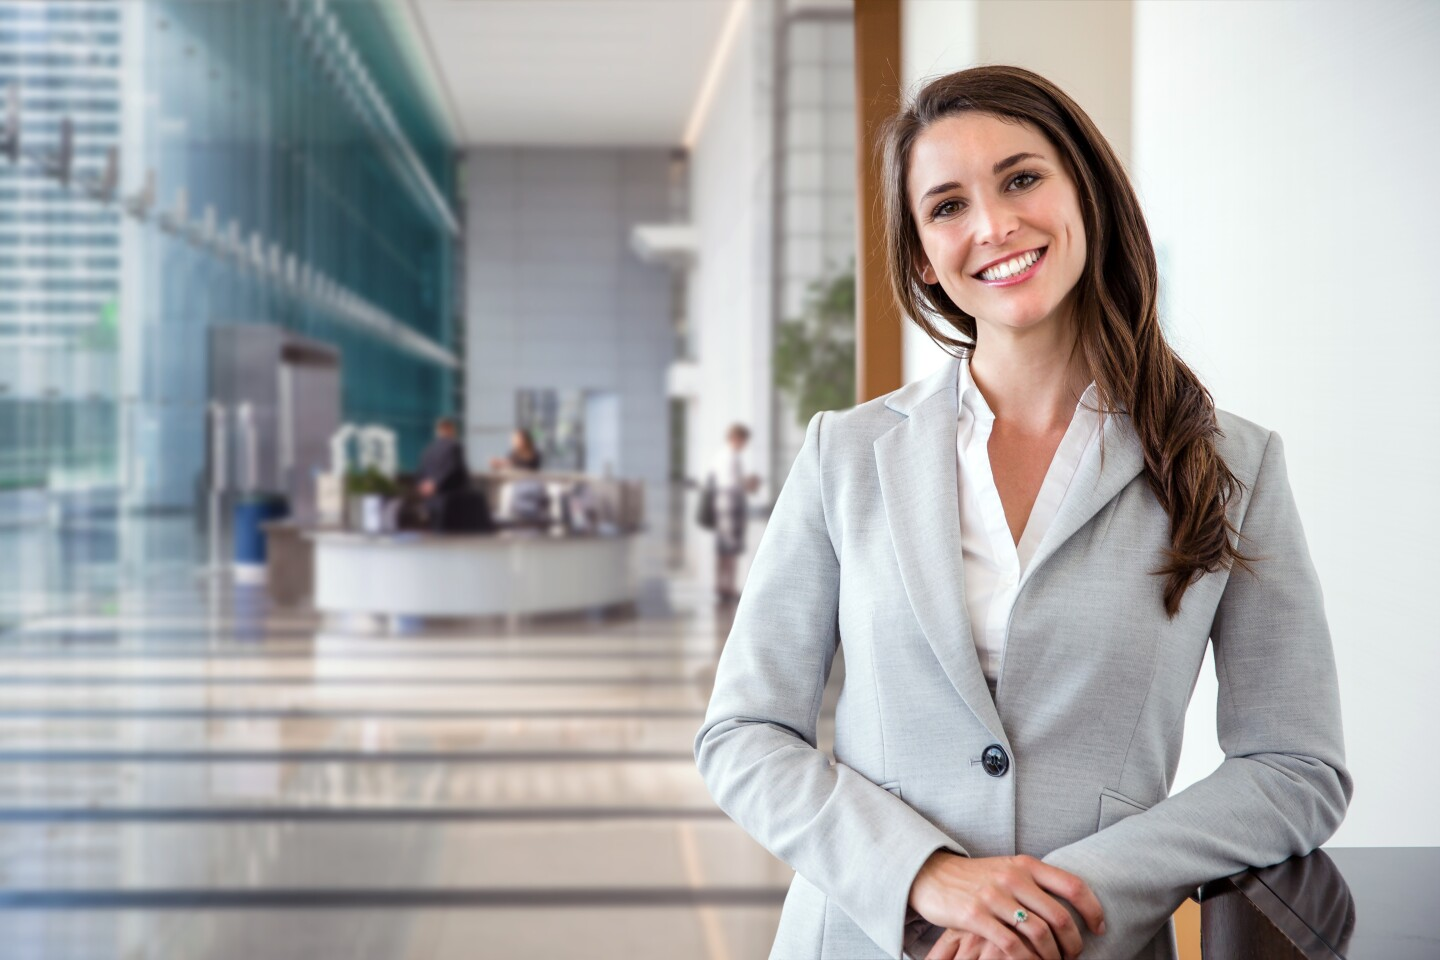 Smiling business woman in suit